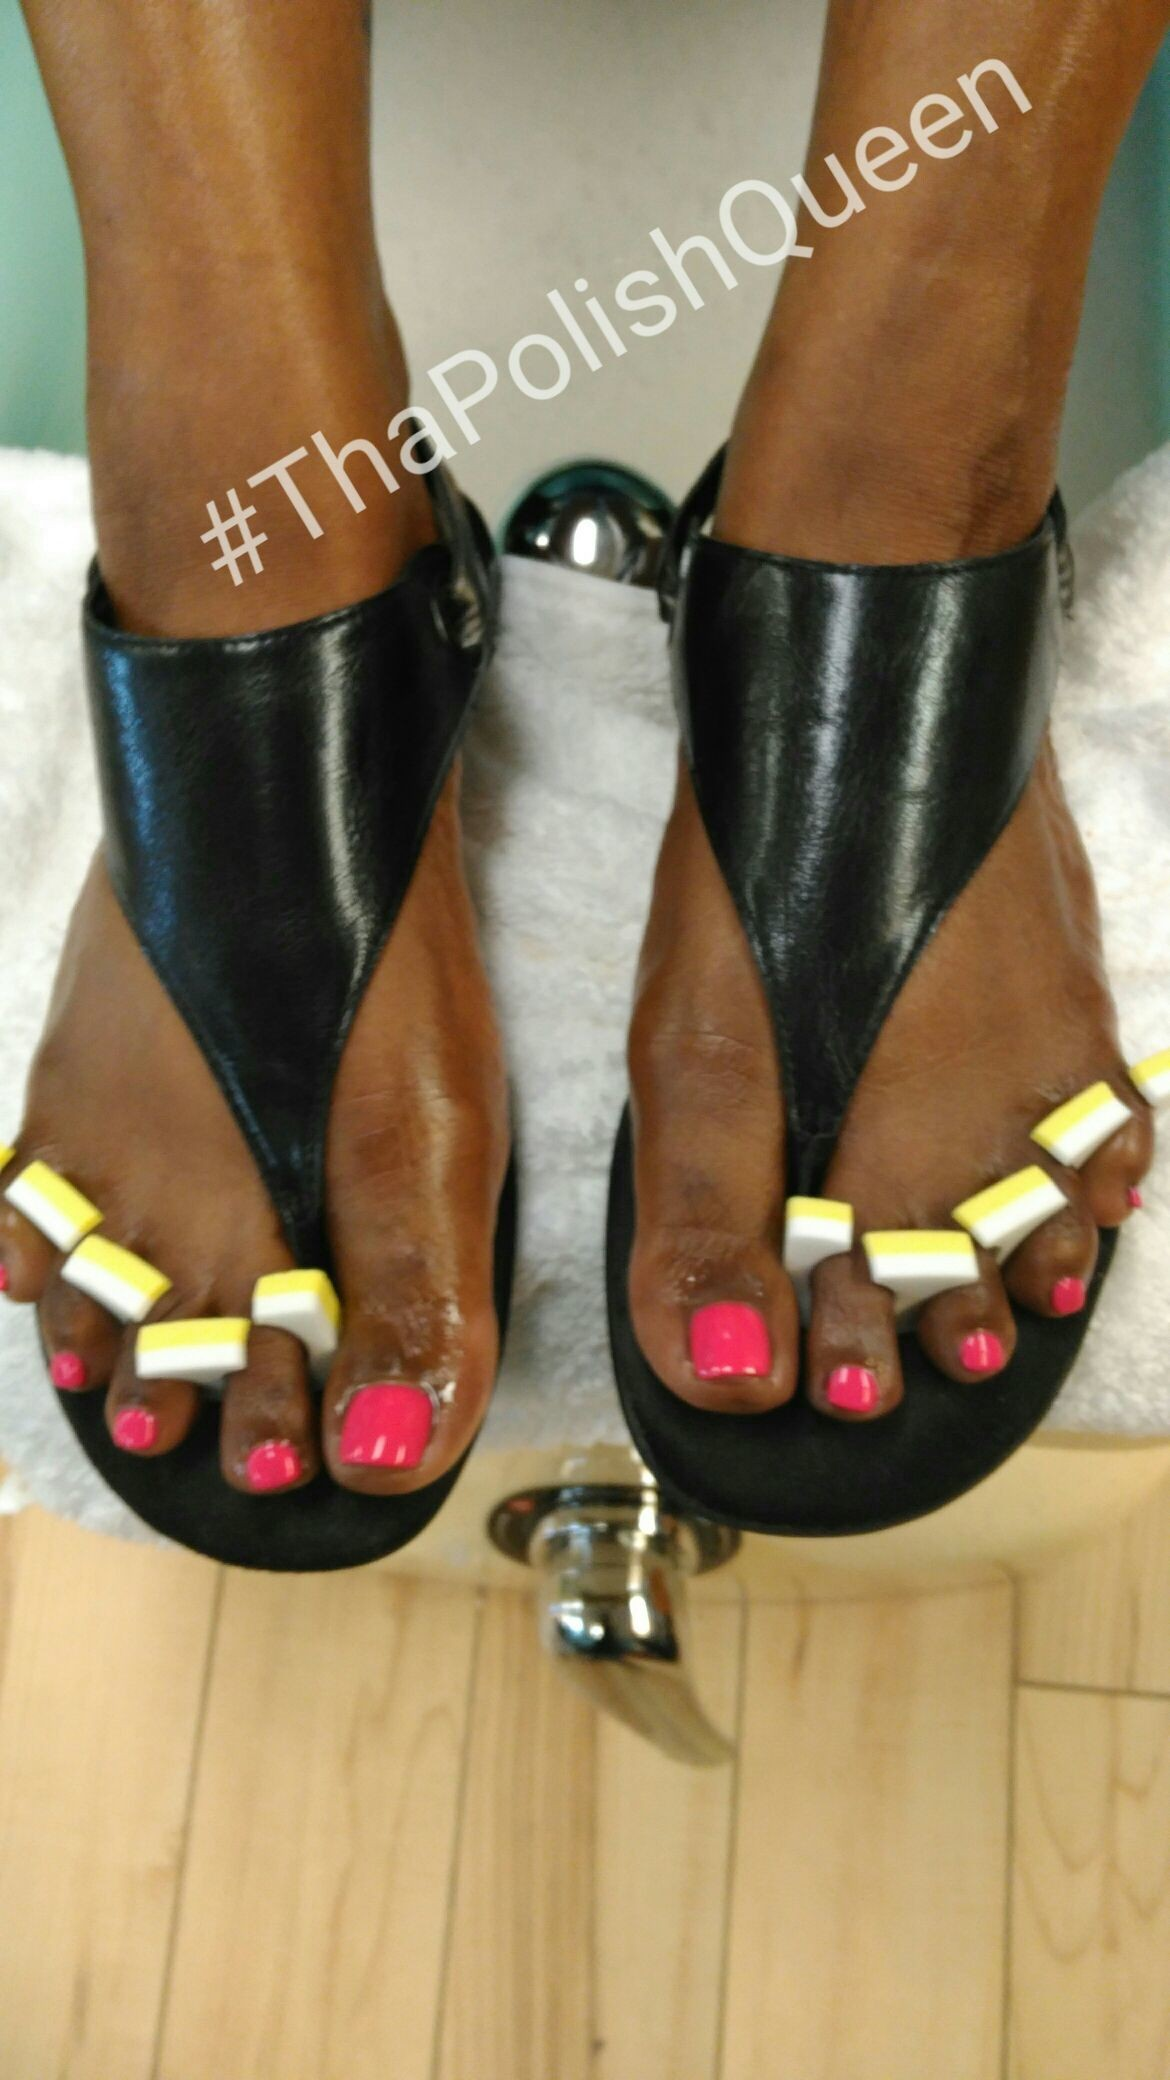 Thank u so much (Realtor) Ms. Anika Dixon for getting your #toes done with #ThaPolishQueen today! #ComeSeeMe #PrettyGurlsFeet #CleanBlackMasterNailTech #IDoNotRush #ITakeMyTime #YourMoneyWillBeWellSpent #YourToesMustBePerfectBeforeYouLeave #ComeExperienceMyHomemadeScrub #SpaologyNailSpa Spaology Nail Spa & More 3000 Kavanaugh Blvd, Ste. C LR, AR 72205 To book your appointment email me @ PrettyGurlsFeet@gmail.com or call me at the salon @ 501.265.0303 or to book directly and purchase your service... Go to my website @ me on IG: @ms_beautiful_feet #ImWaitingOnYou